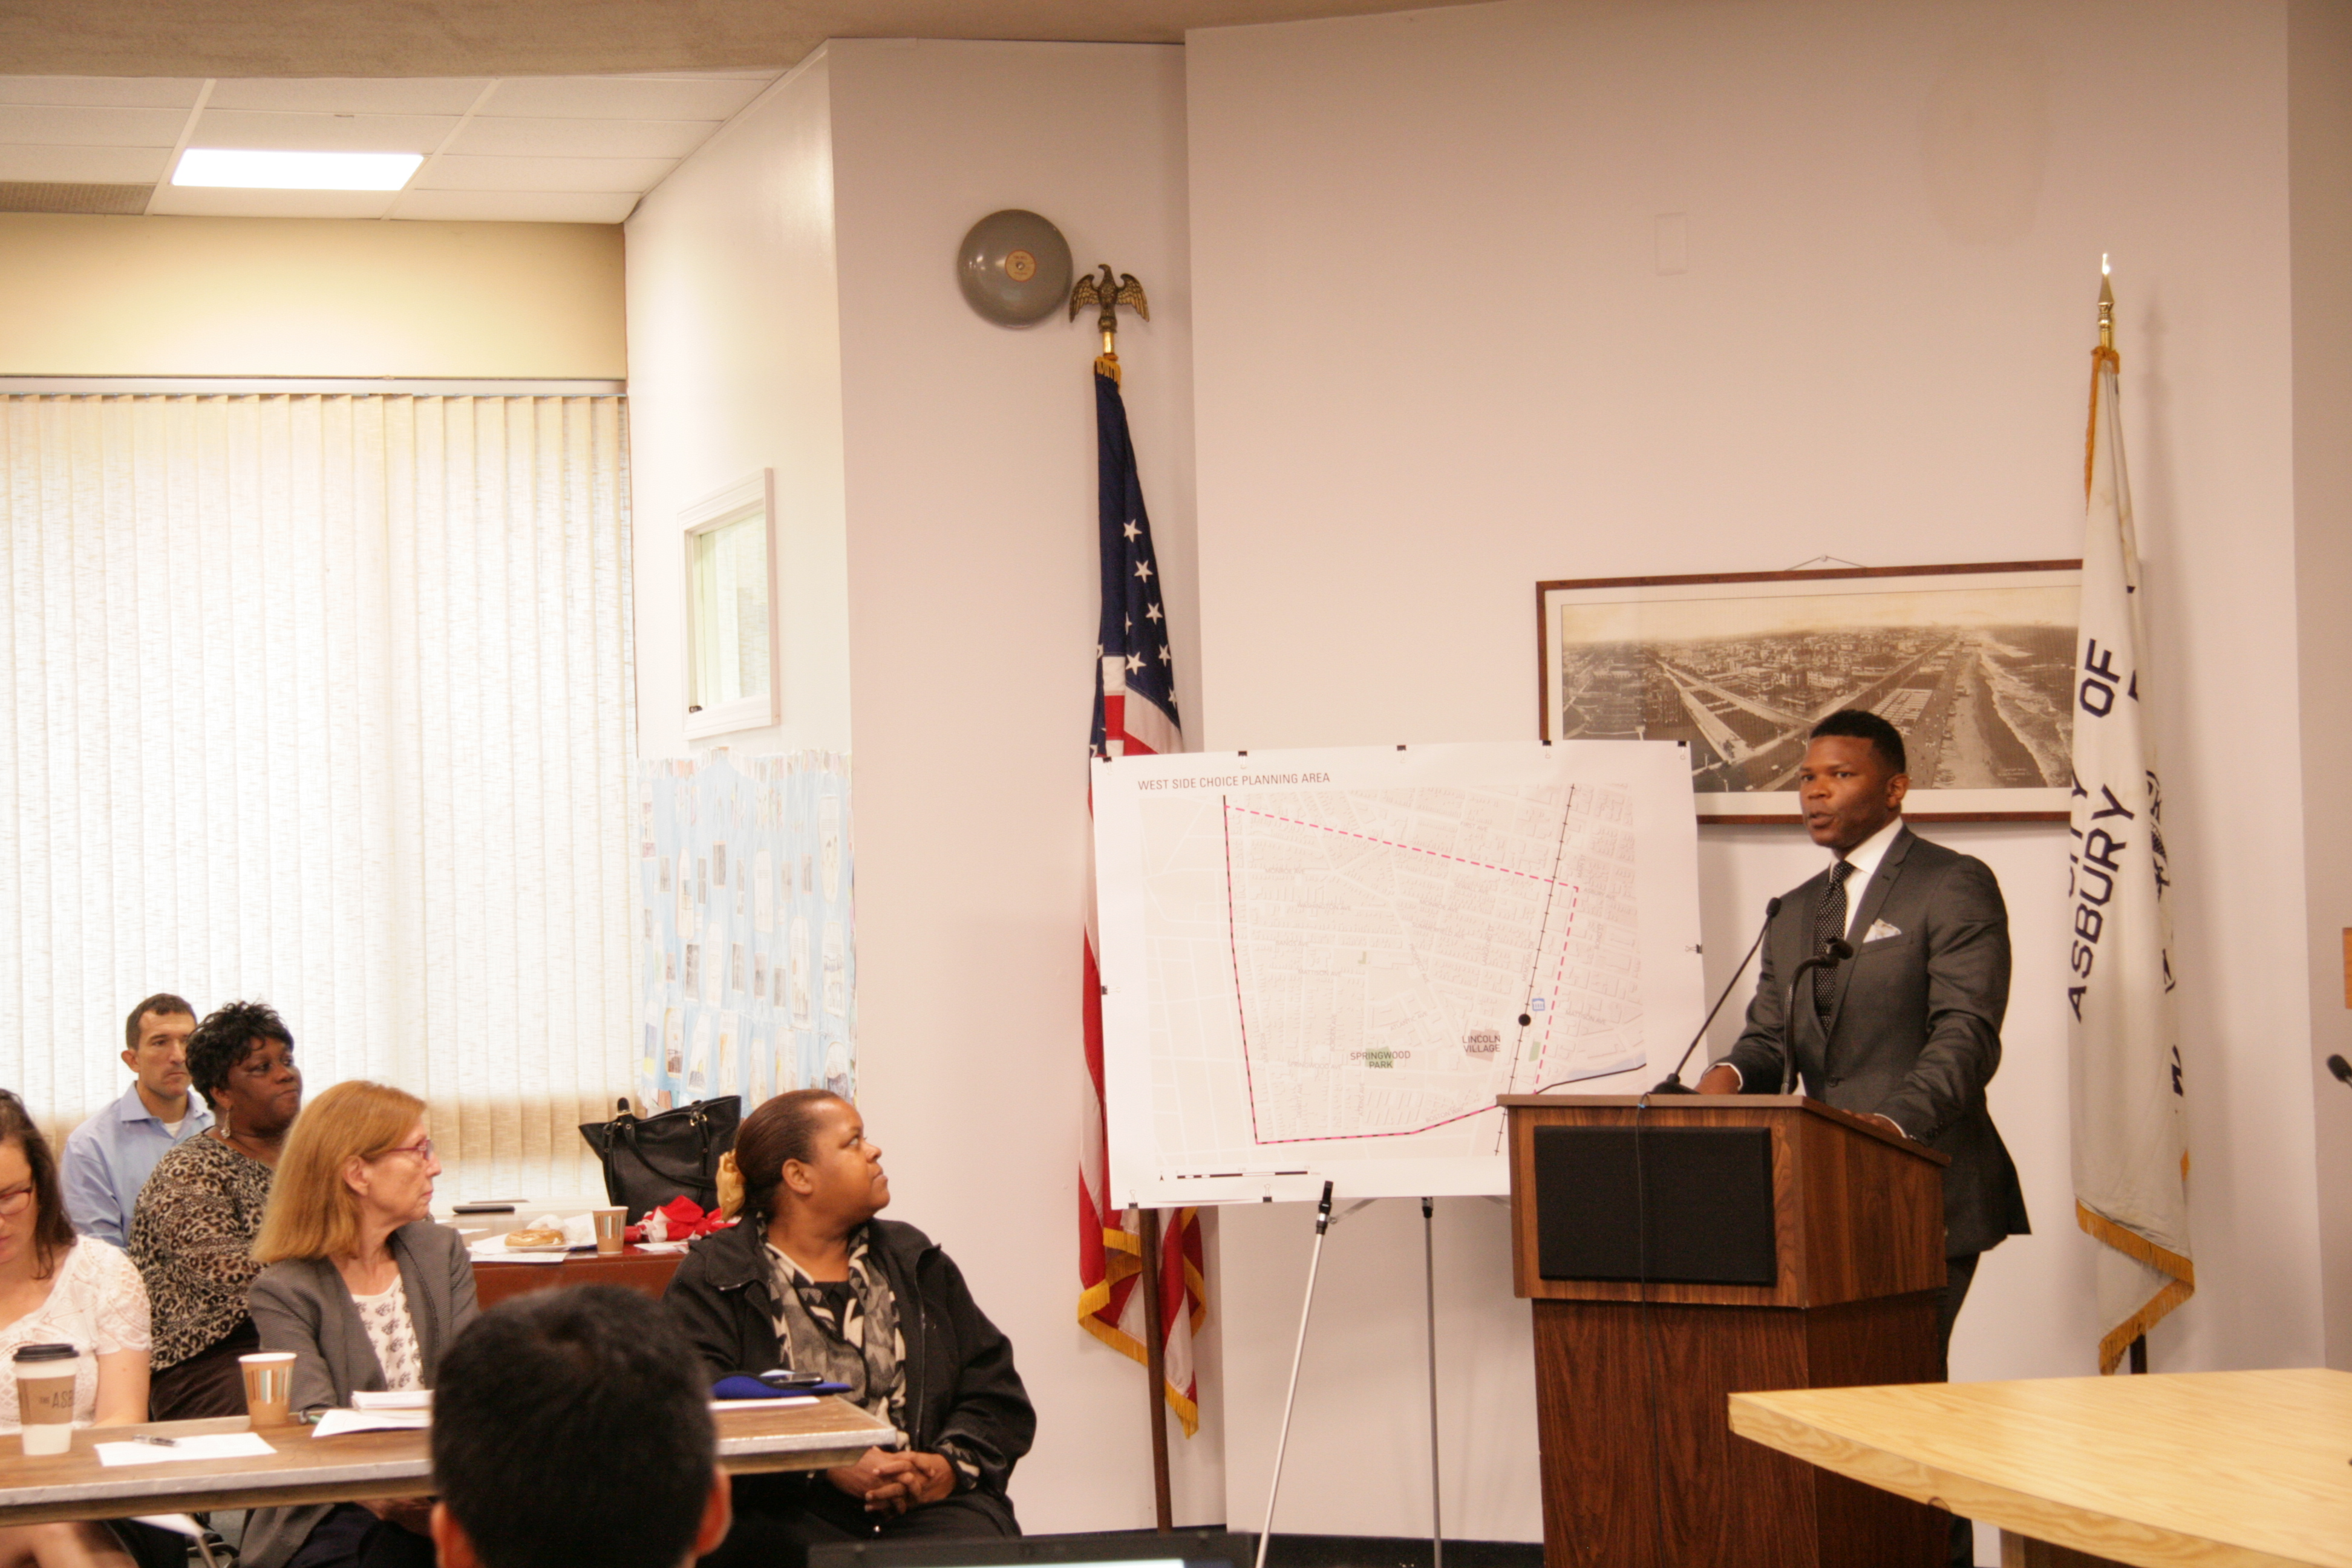 Tyrone Garrett, Executive Director Of The Asbury Park Housing Authority, Addresses The Crowd At The HUD Kick-Off Meeting In September 2016. Credit: WRT